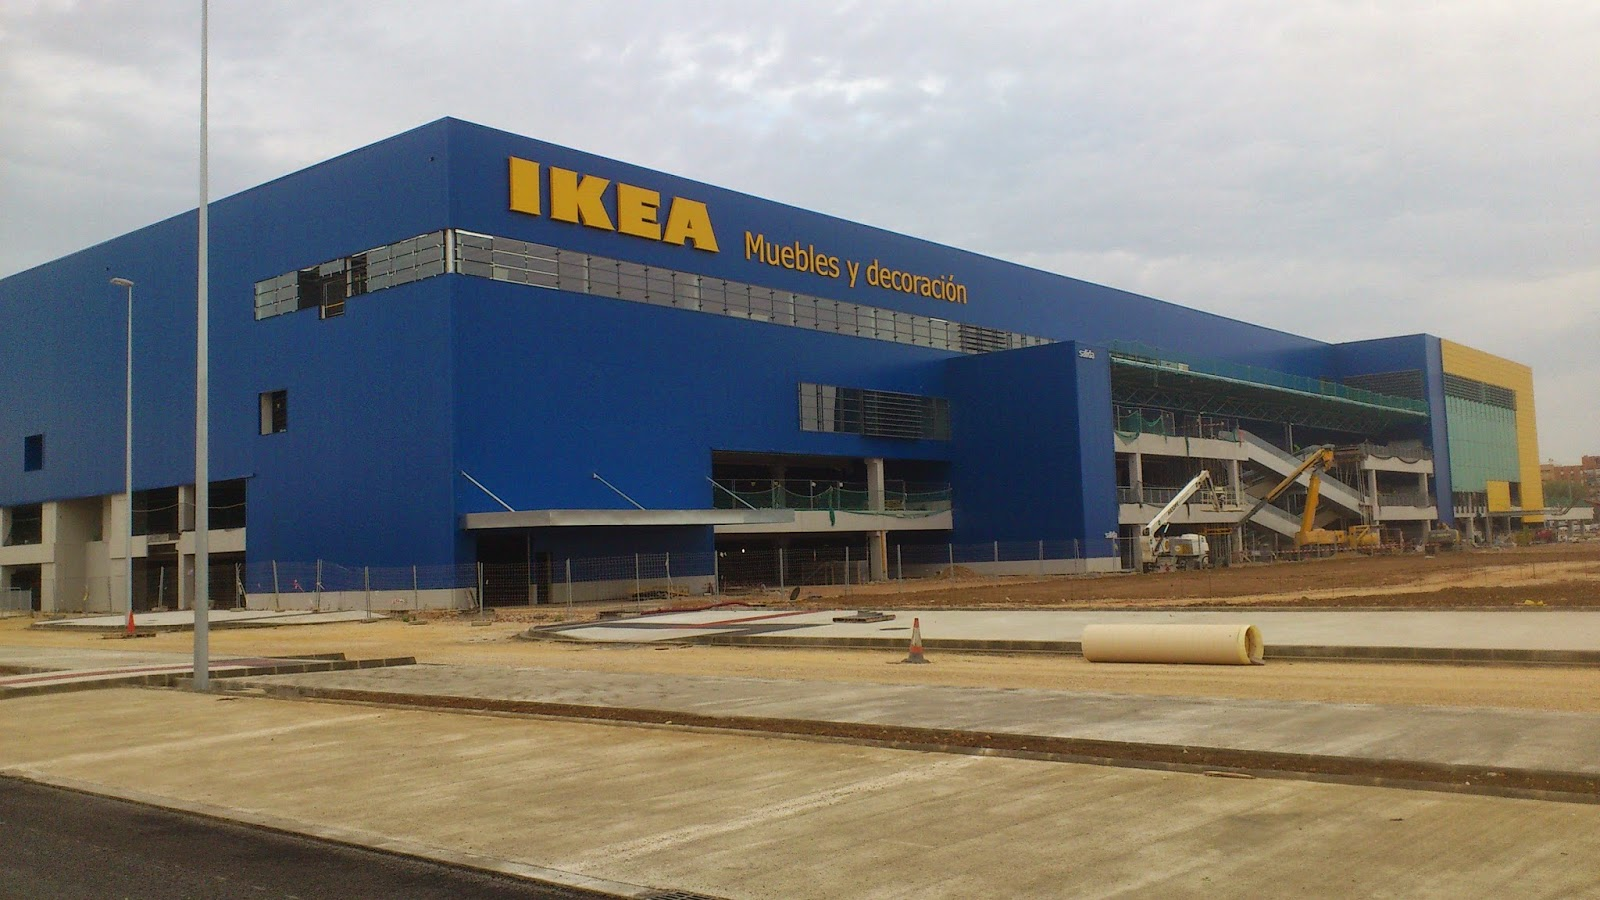 ikea may sue valencia government for banning sunday opening. Black Bedroom Furniture Sets. Home Design Ideas